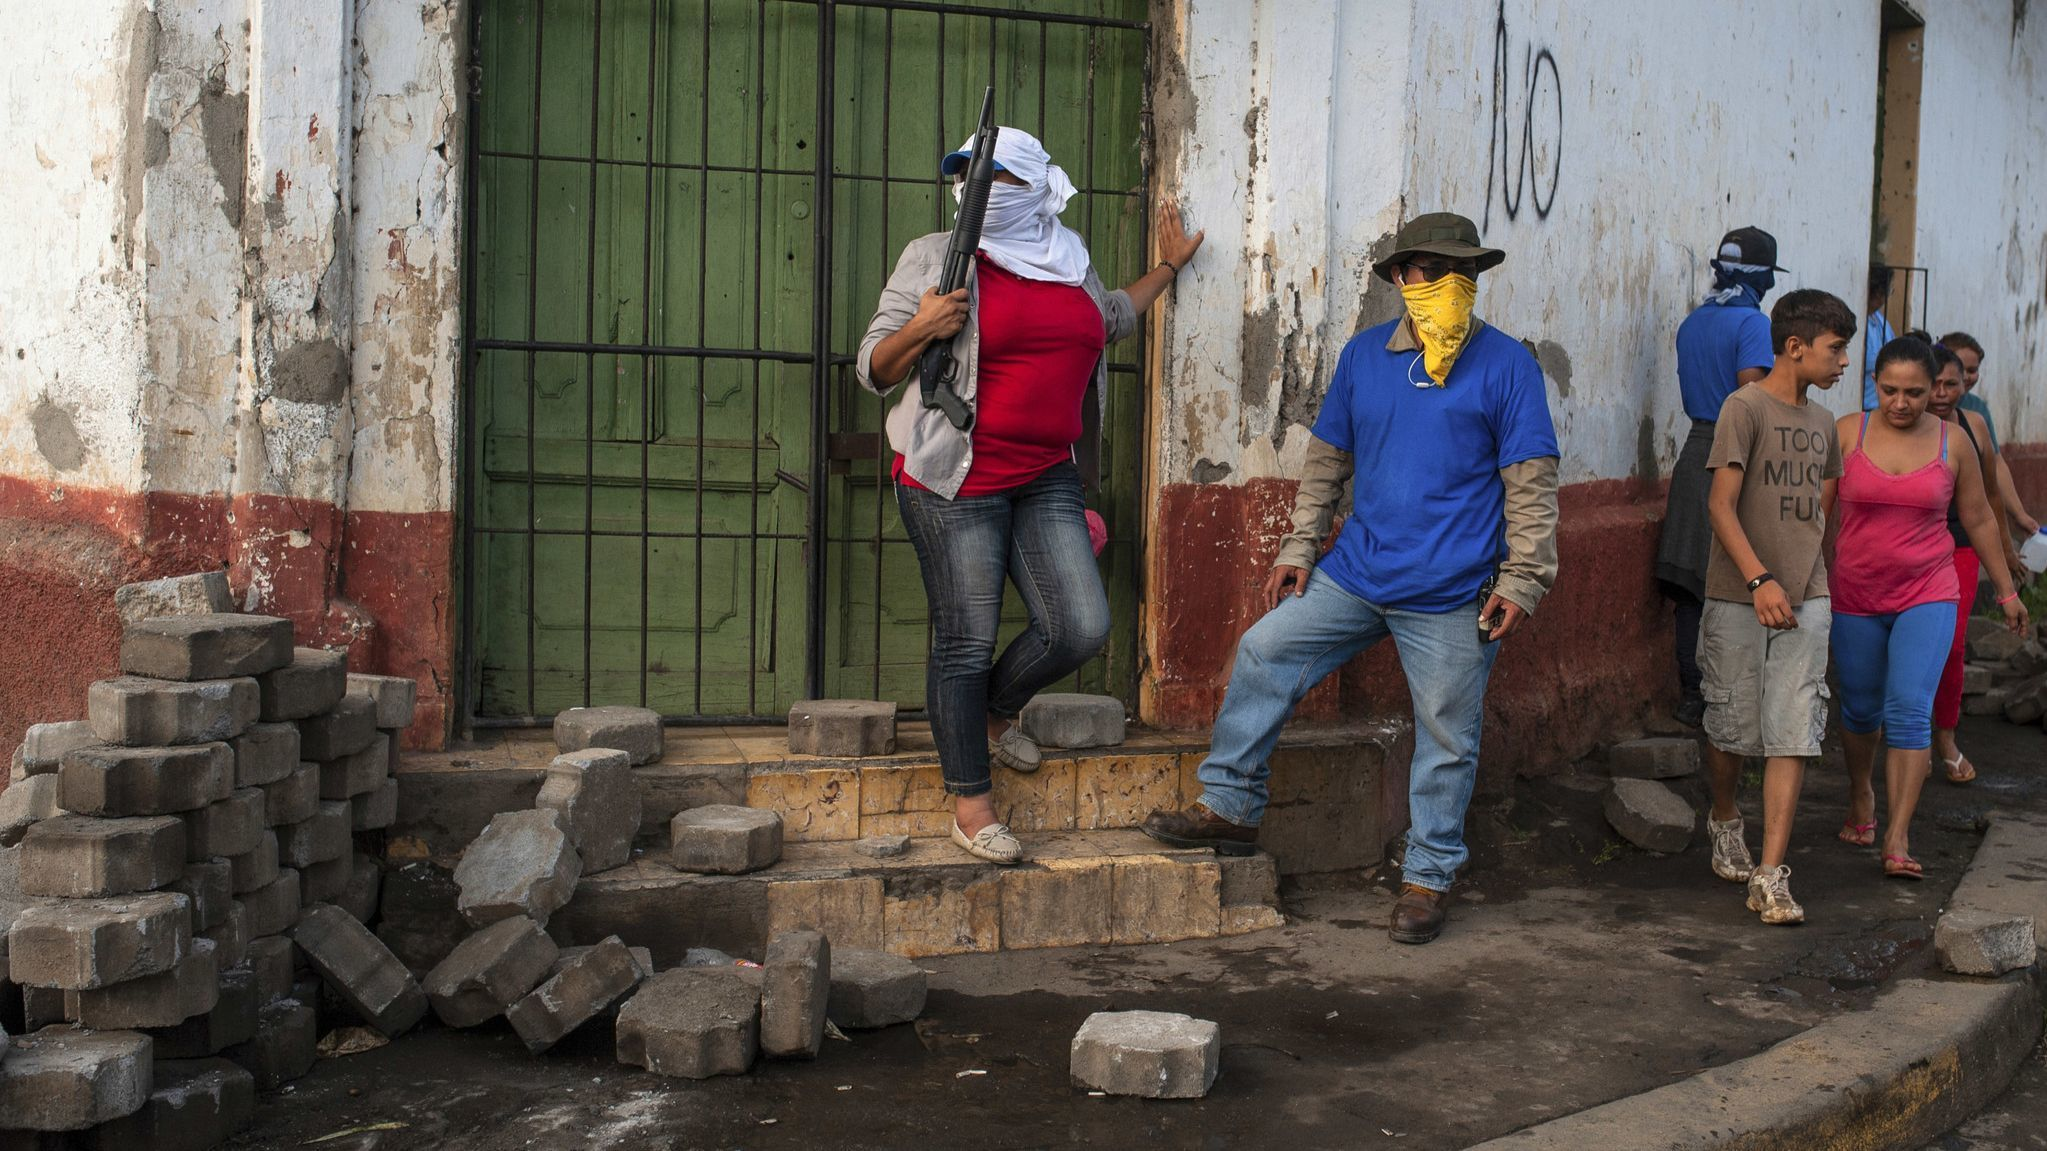 A Nicaraguan city famed for its rebel past is fomenting rebellion again, but now against the Sandinistas